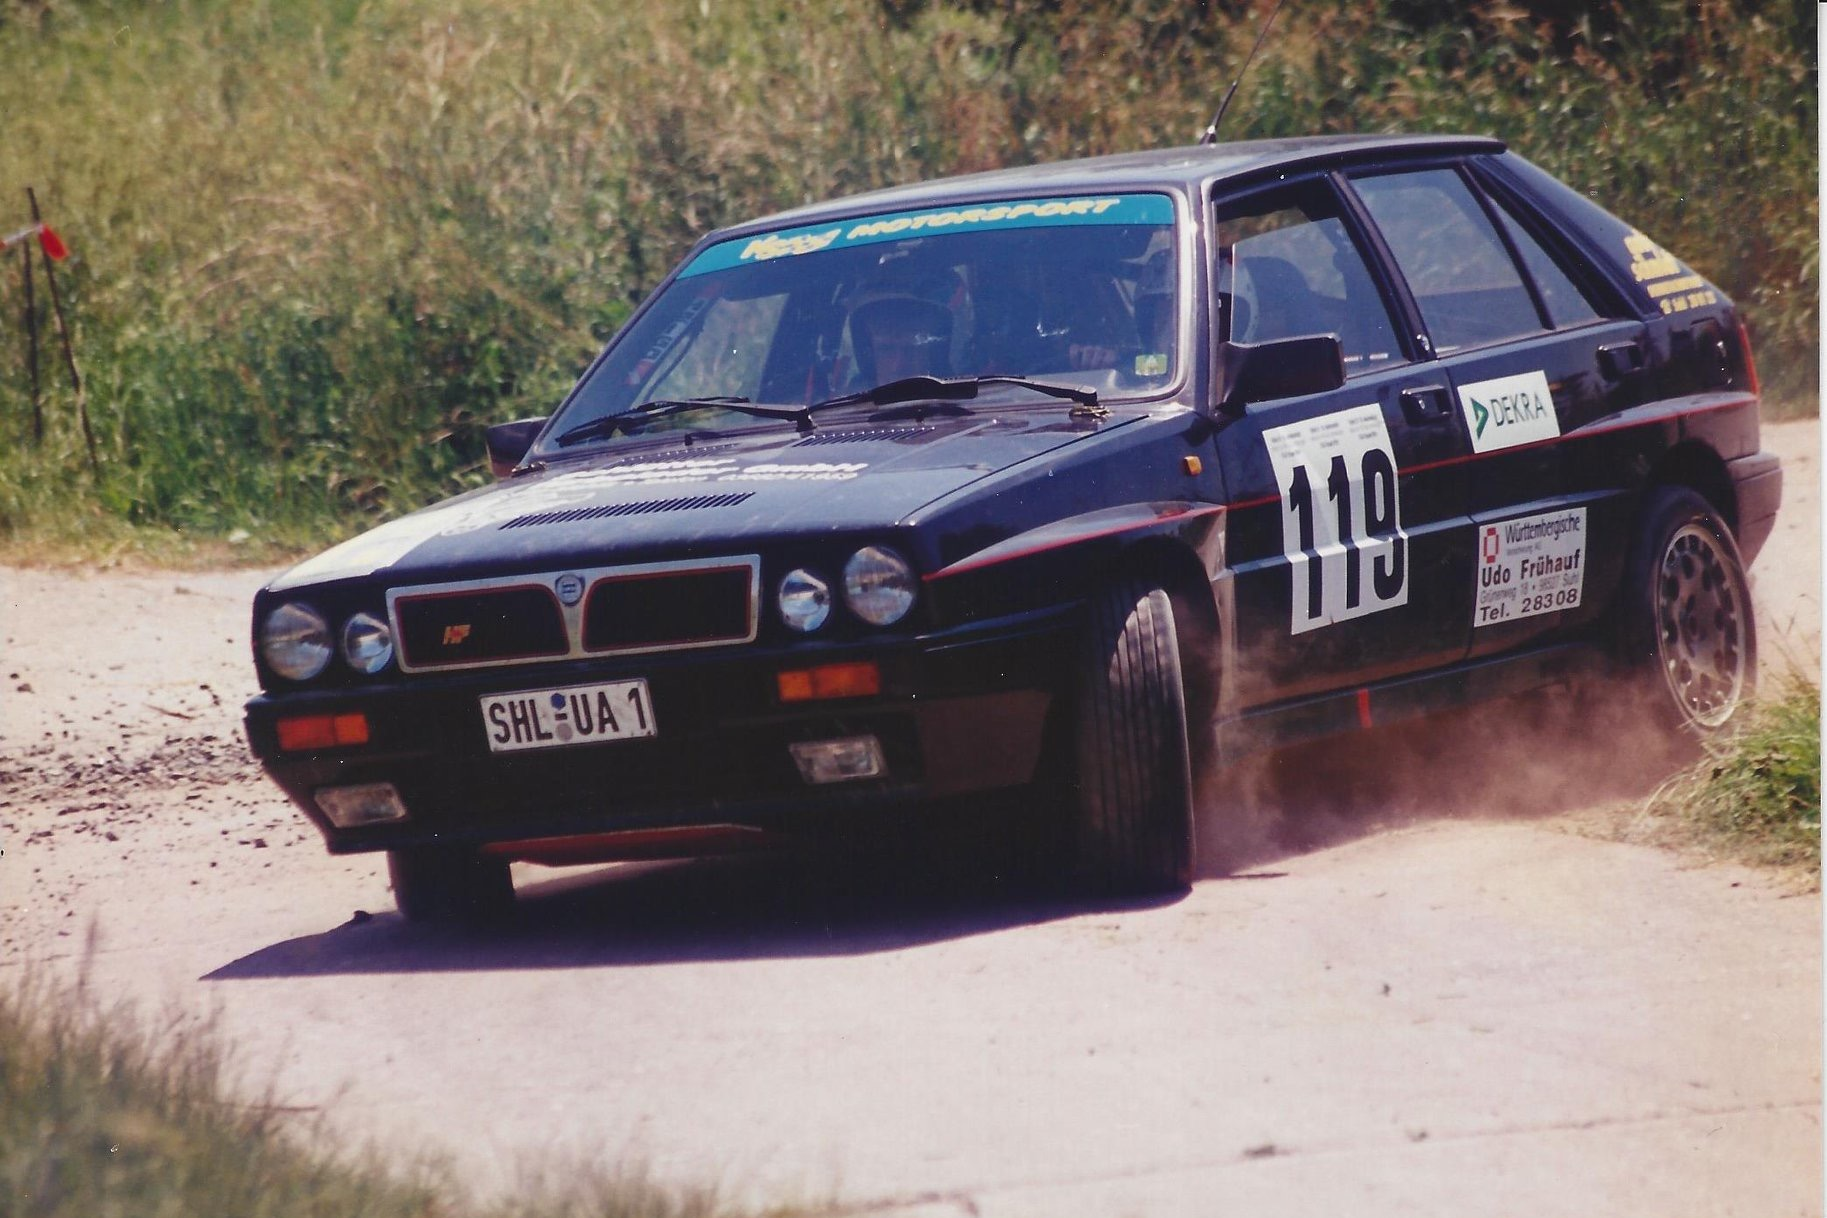 1988, LANCIA DELTA INTEGRALE 8V Group N